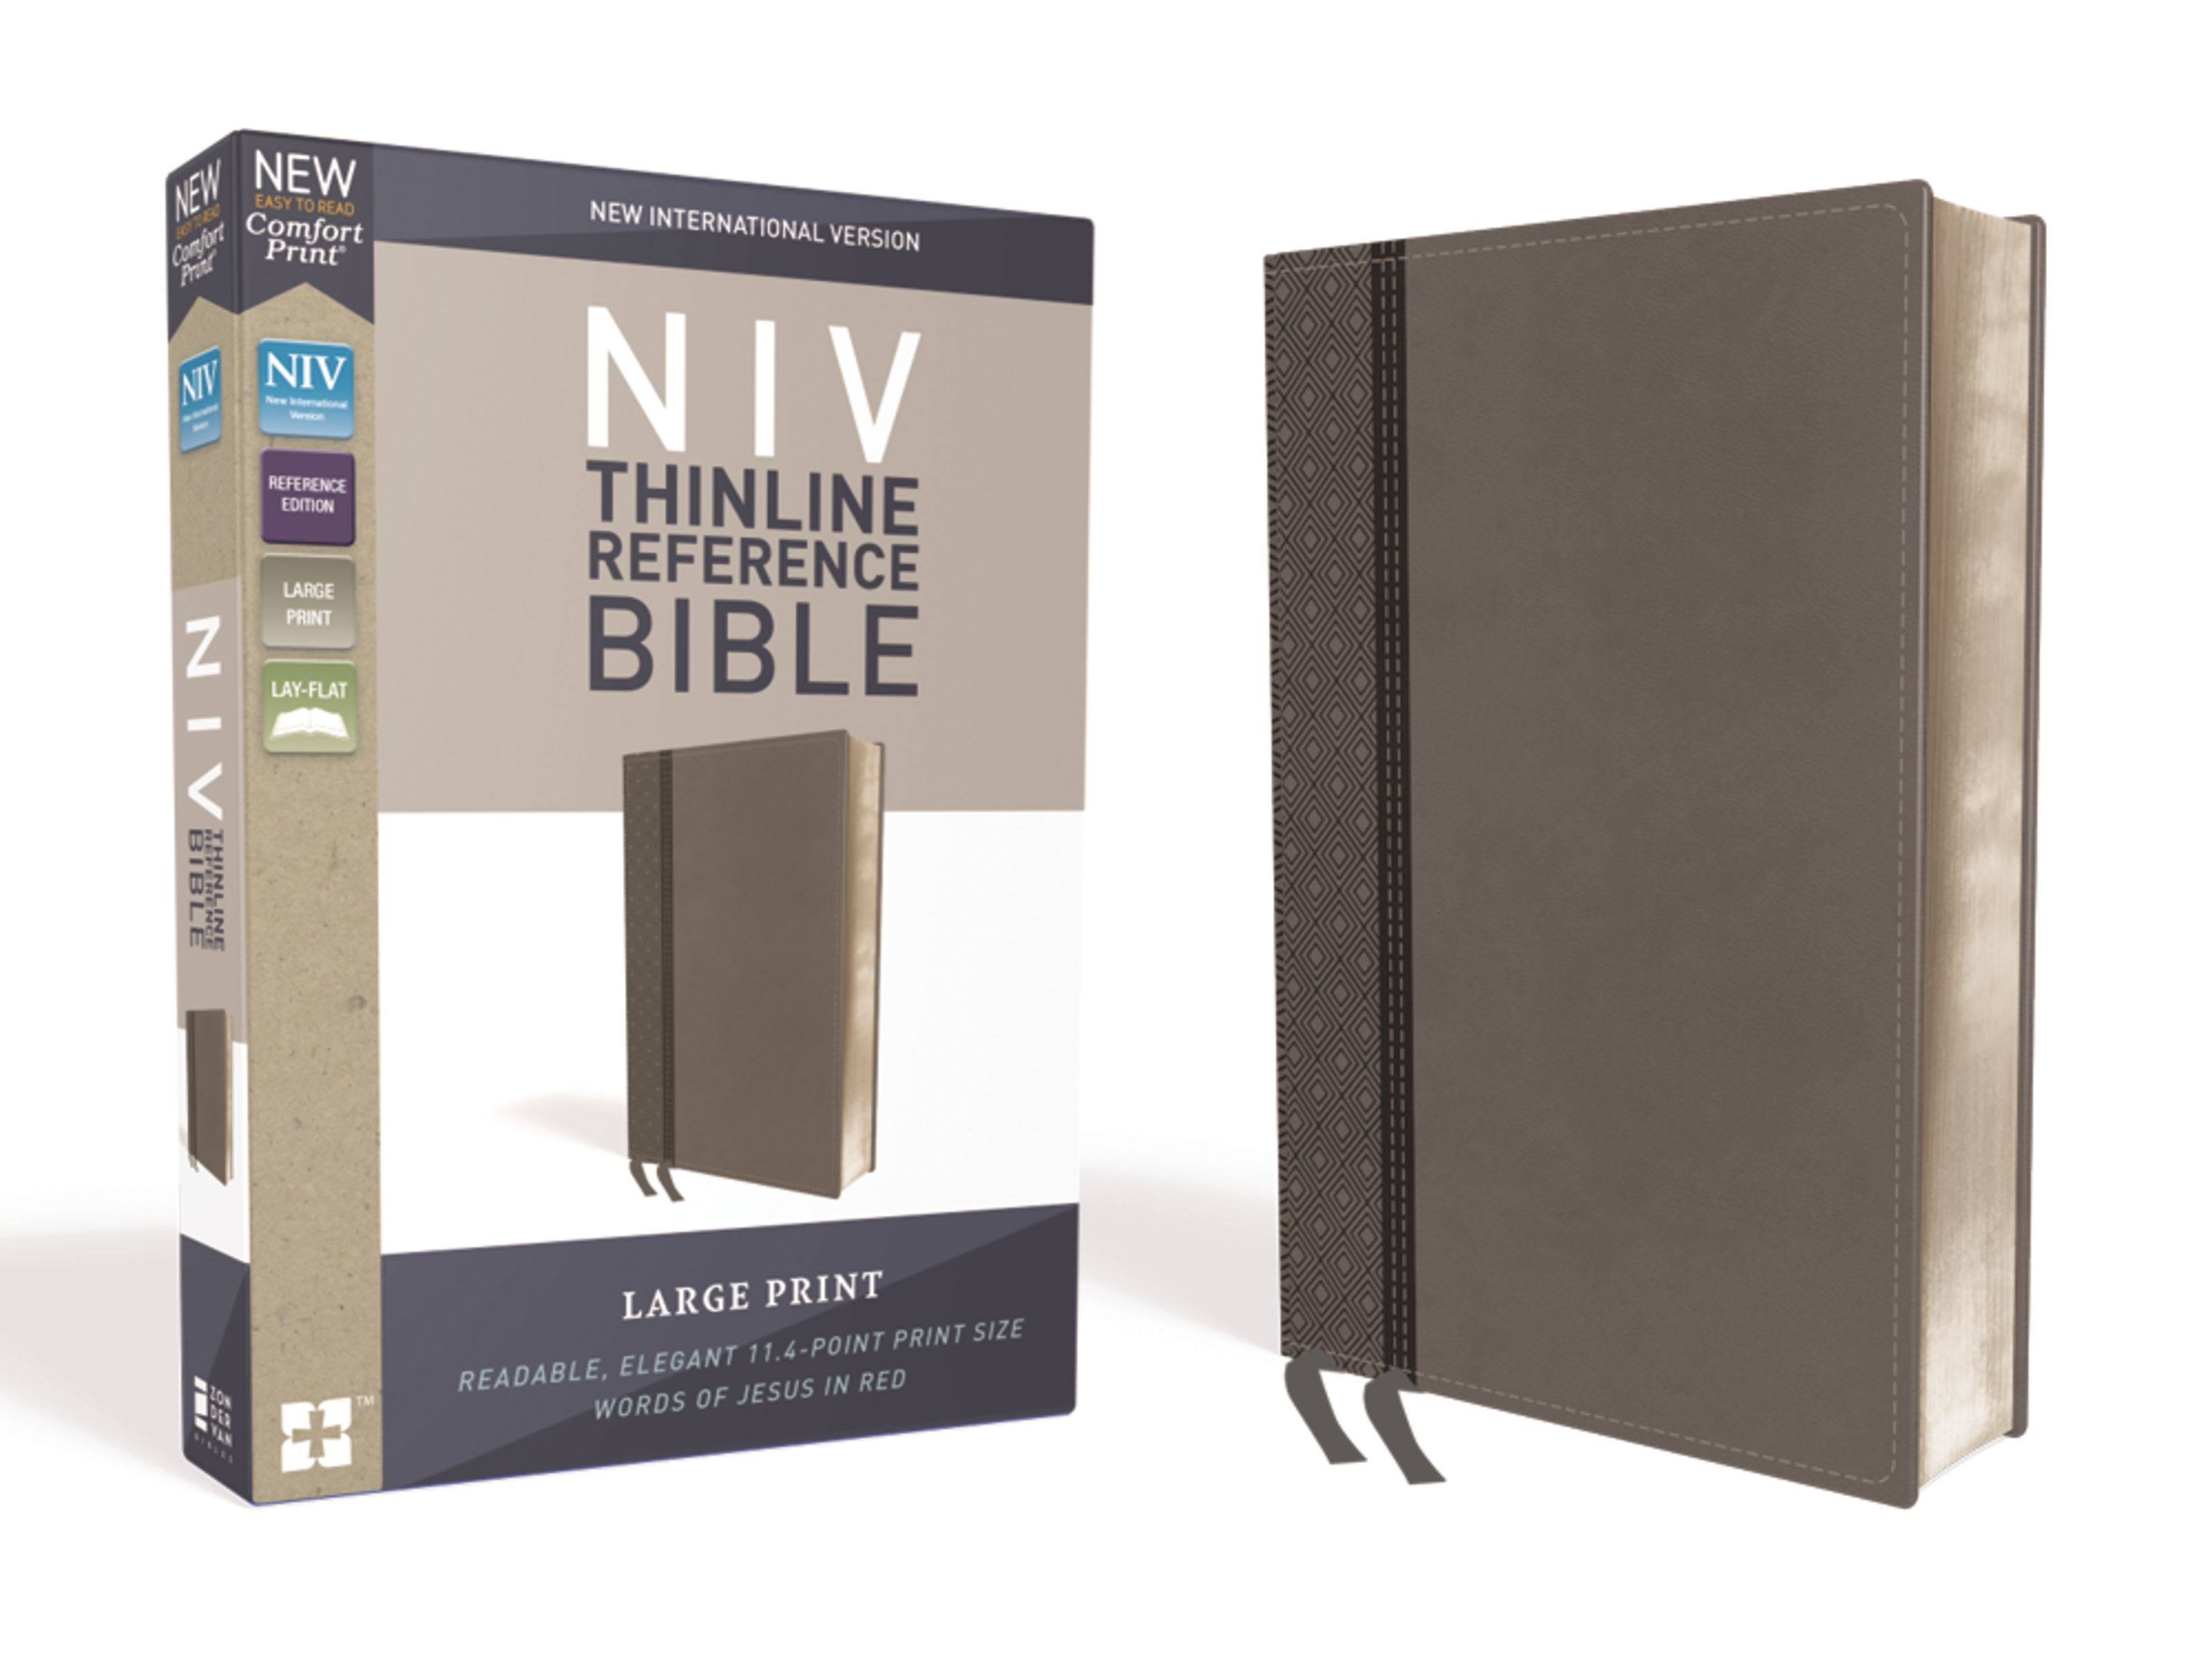 NIV Thinline Reference Bible/Large Print (Comfort Print)-Charcoal LeatherSoft